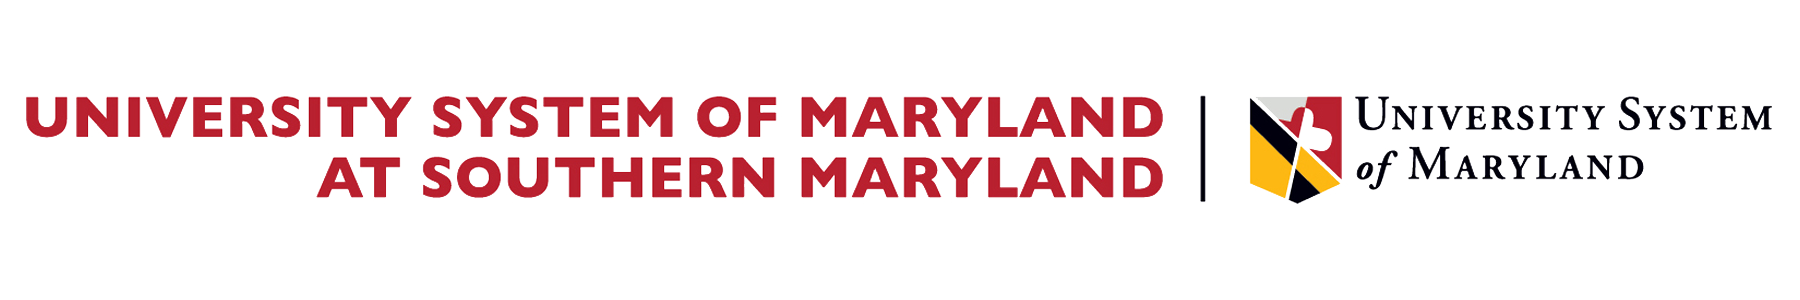 University System of Maryland at Southern Maryland Logo